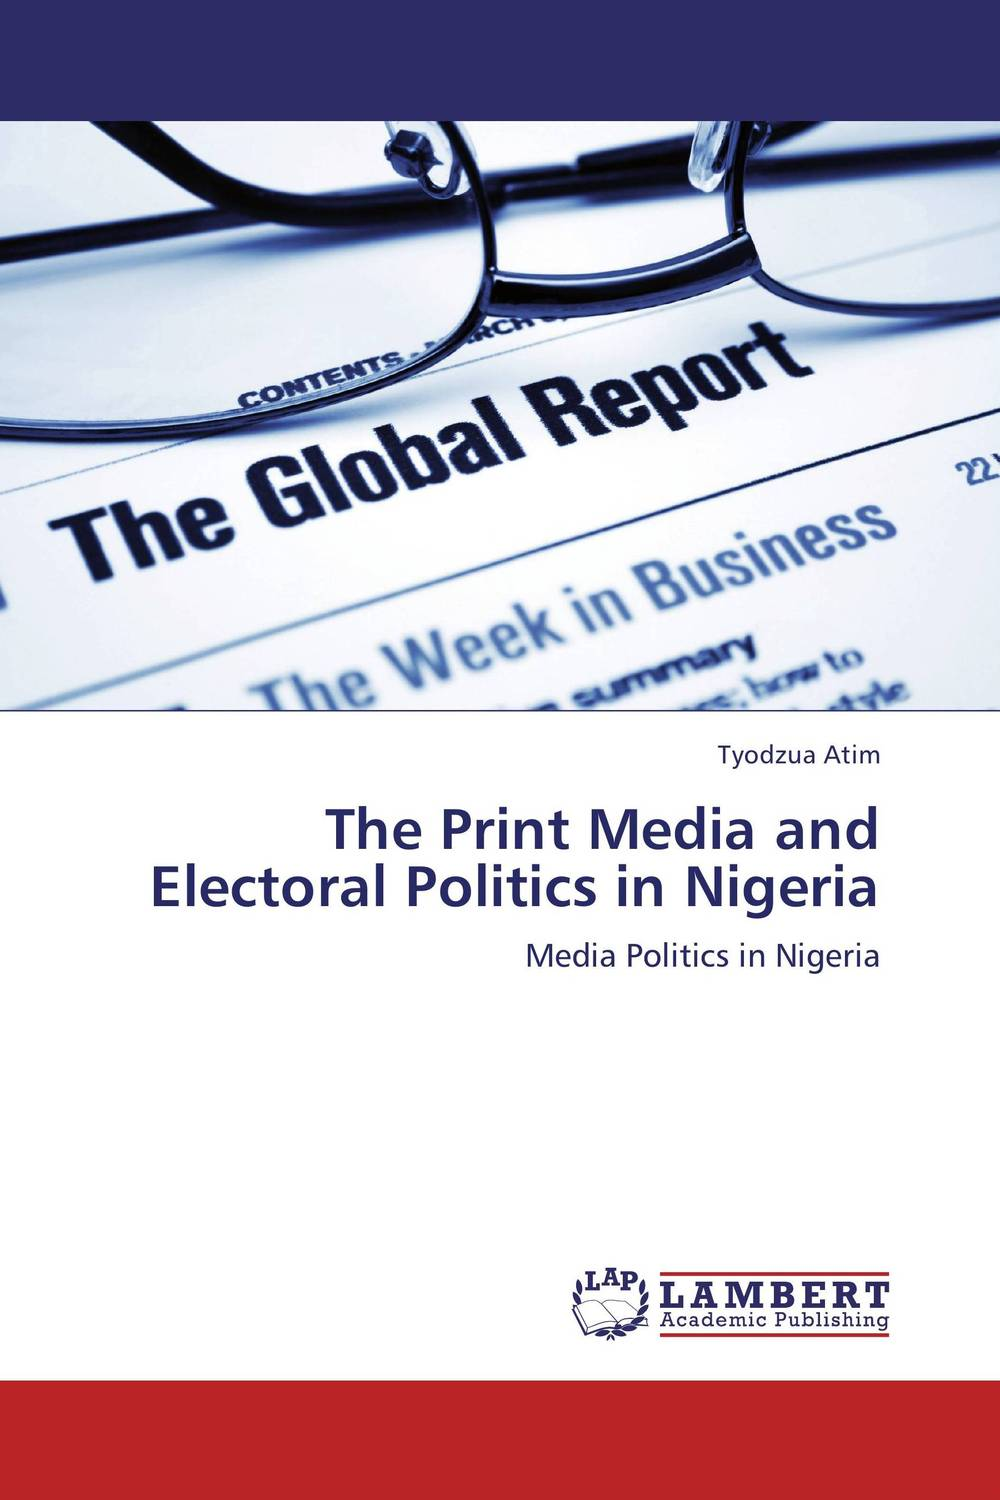 The Print Media and Electoral Politics in Nigeria doug young the party line how the media dictates public opinion in modern china